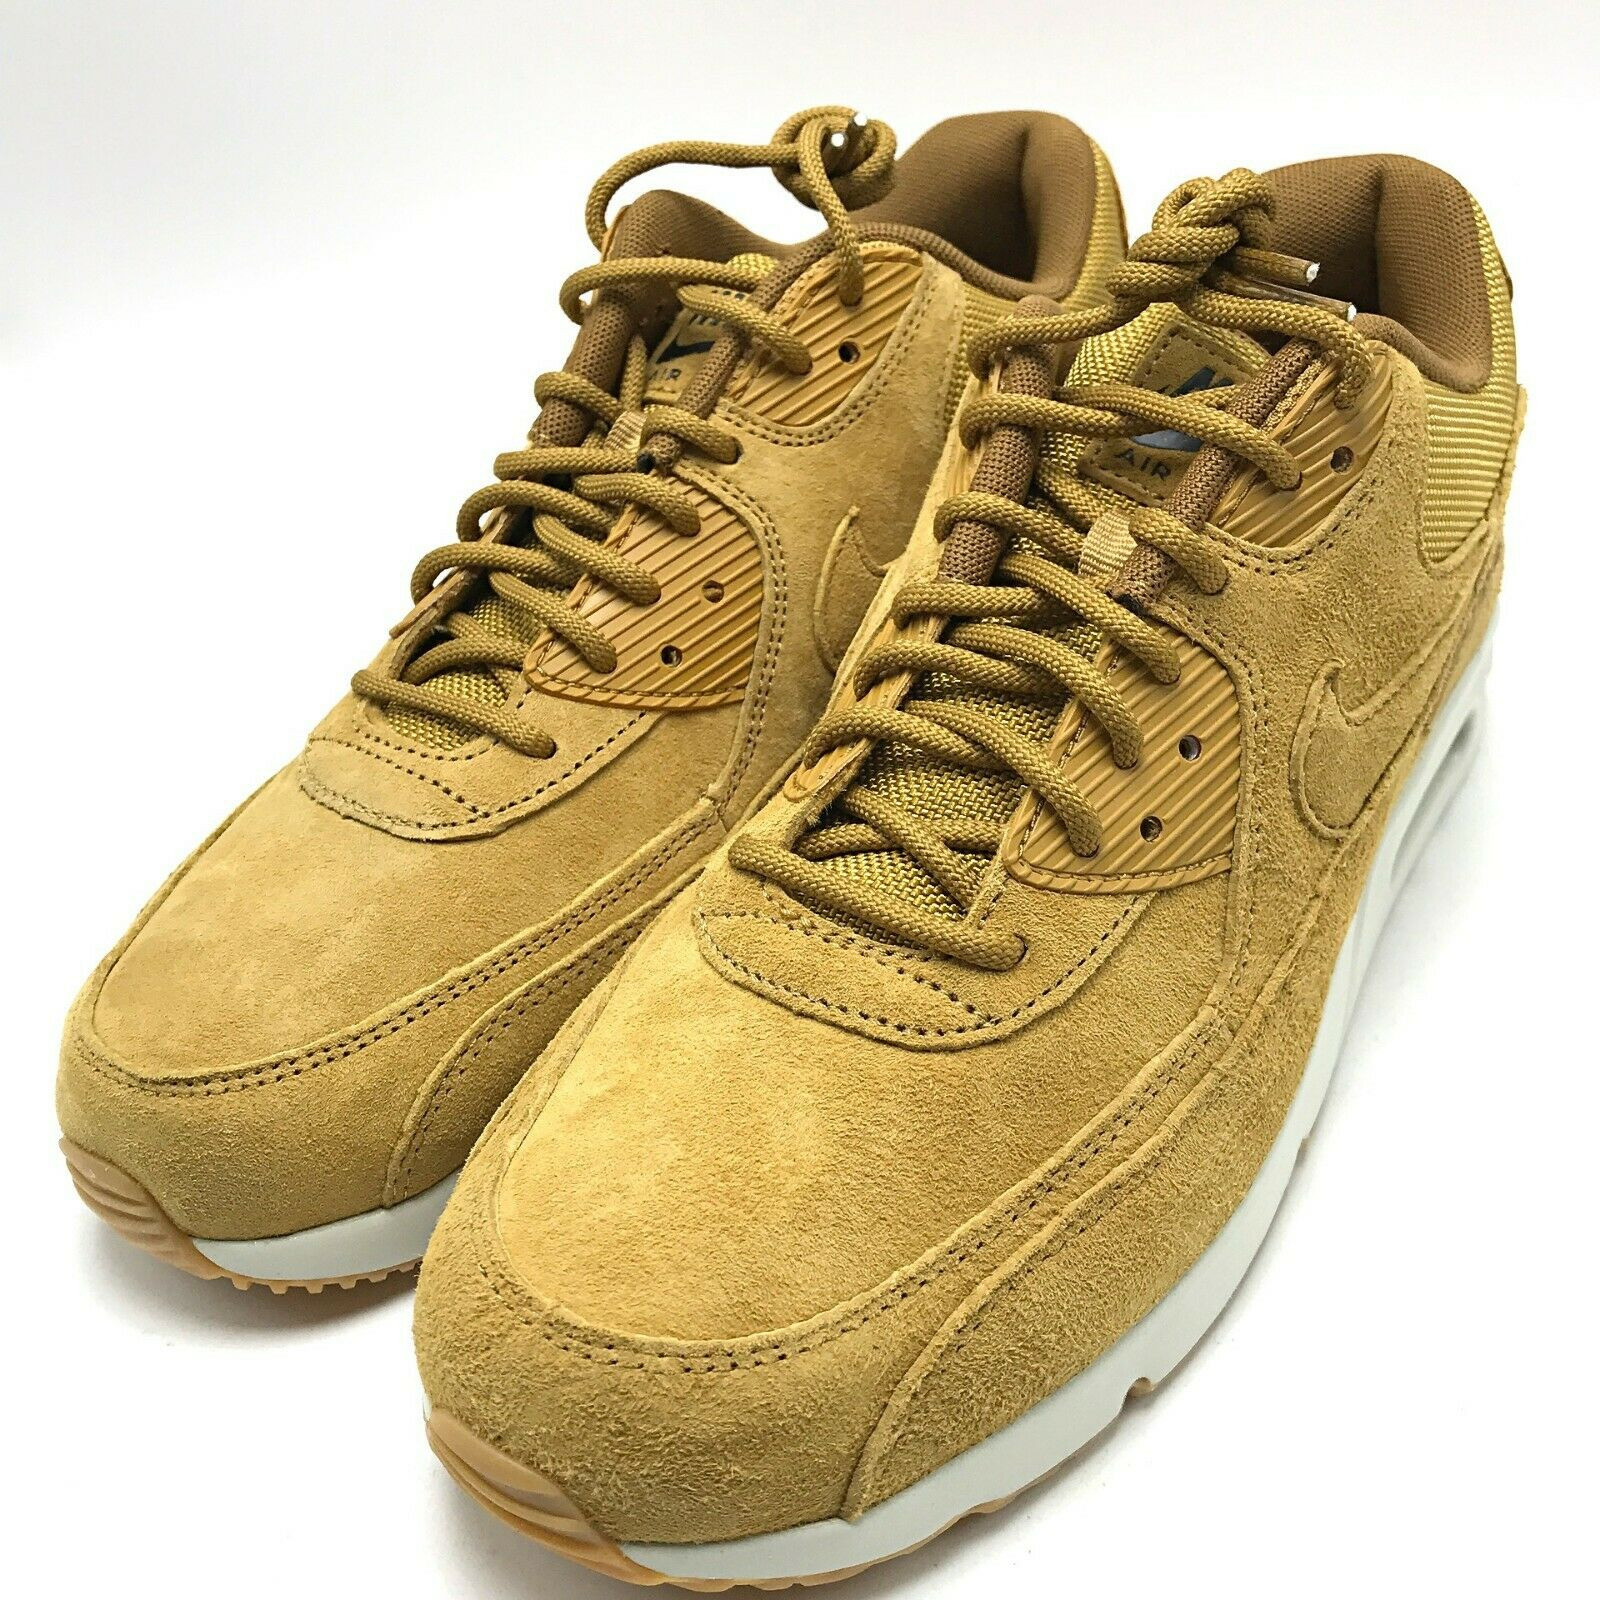 Nike Air Max 90 Ultra 2.0 LTR  Men's Running shoes Wheat   Light Bone 924447-700  export outlet